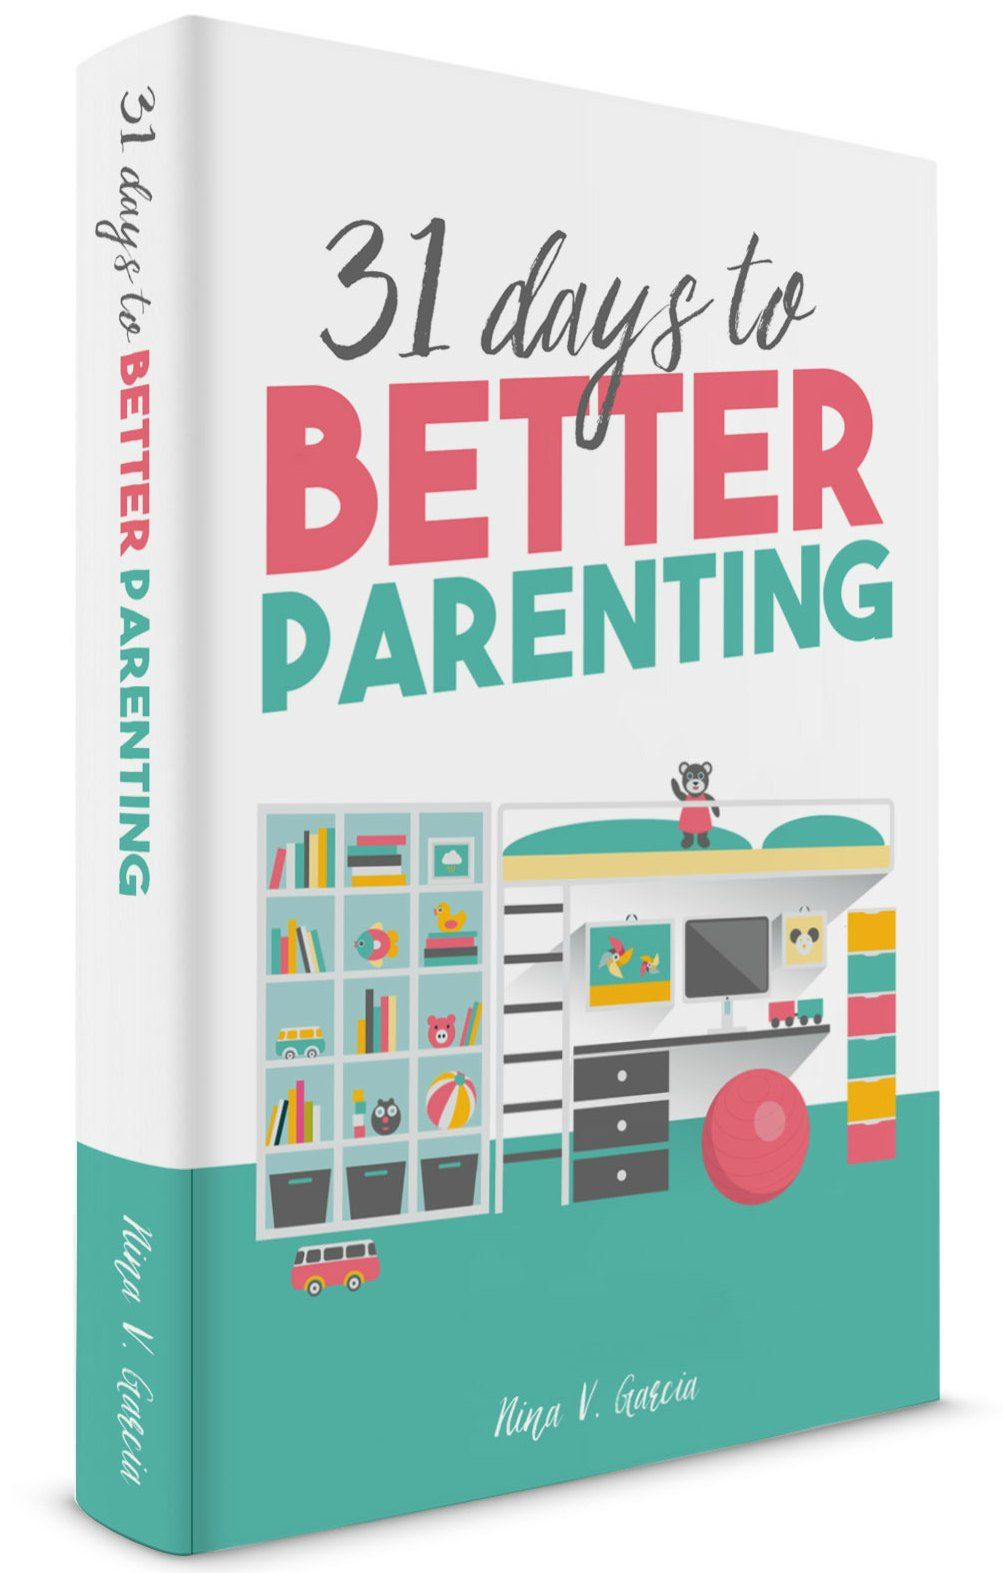 Workbooks understatement worksheets : 31 DAYS TO BETTER PARENTING. Get daily parenting tips to help you ...